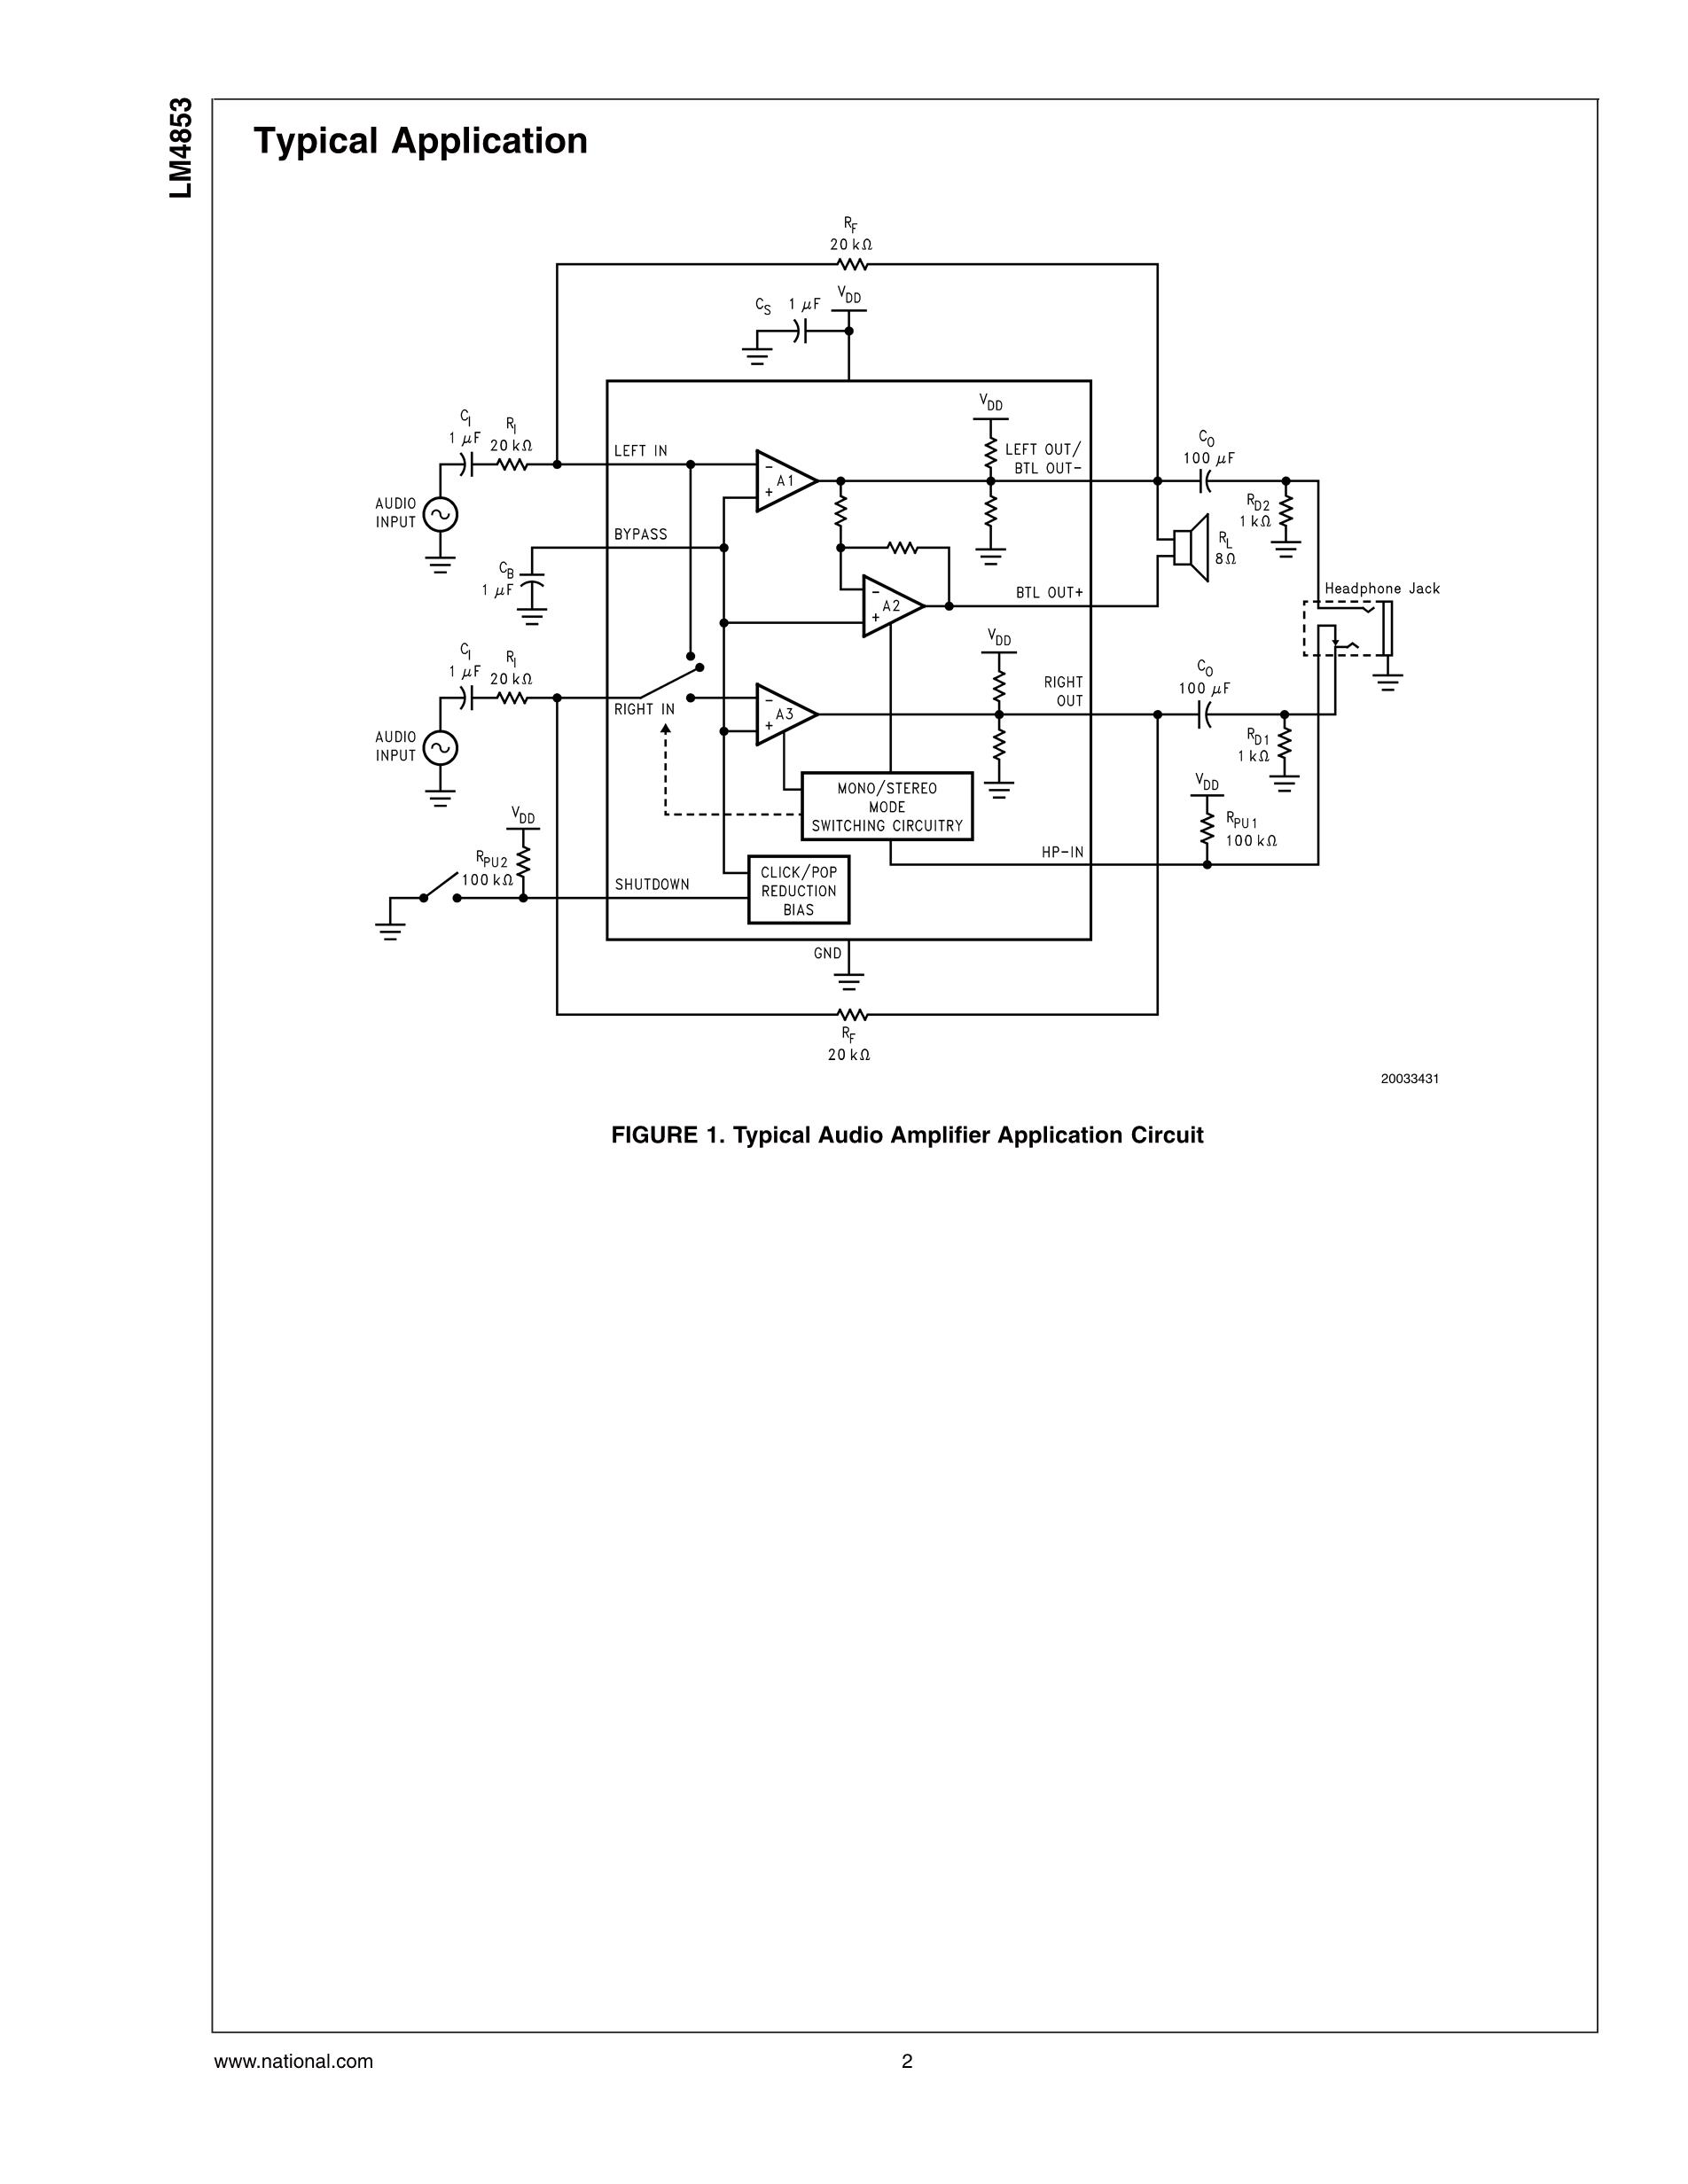 LM4841MH/NOPB's pdf picture 2